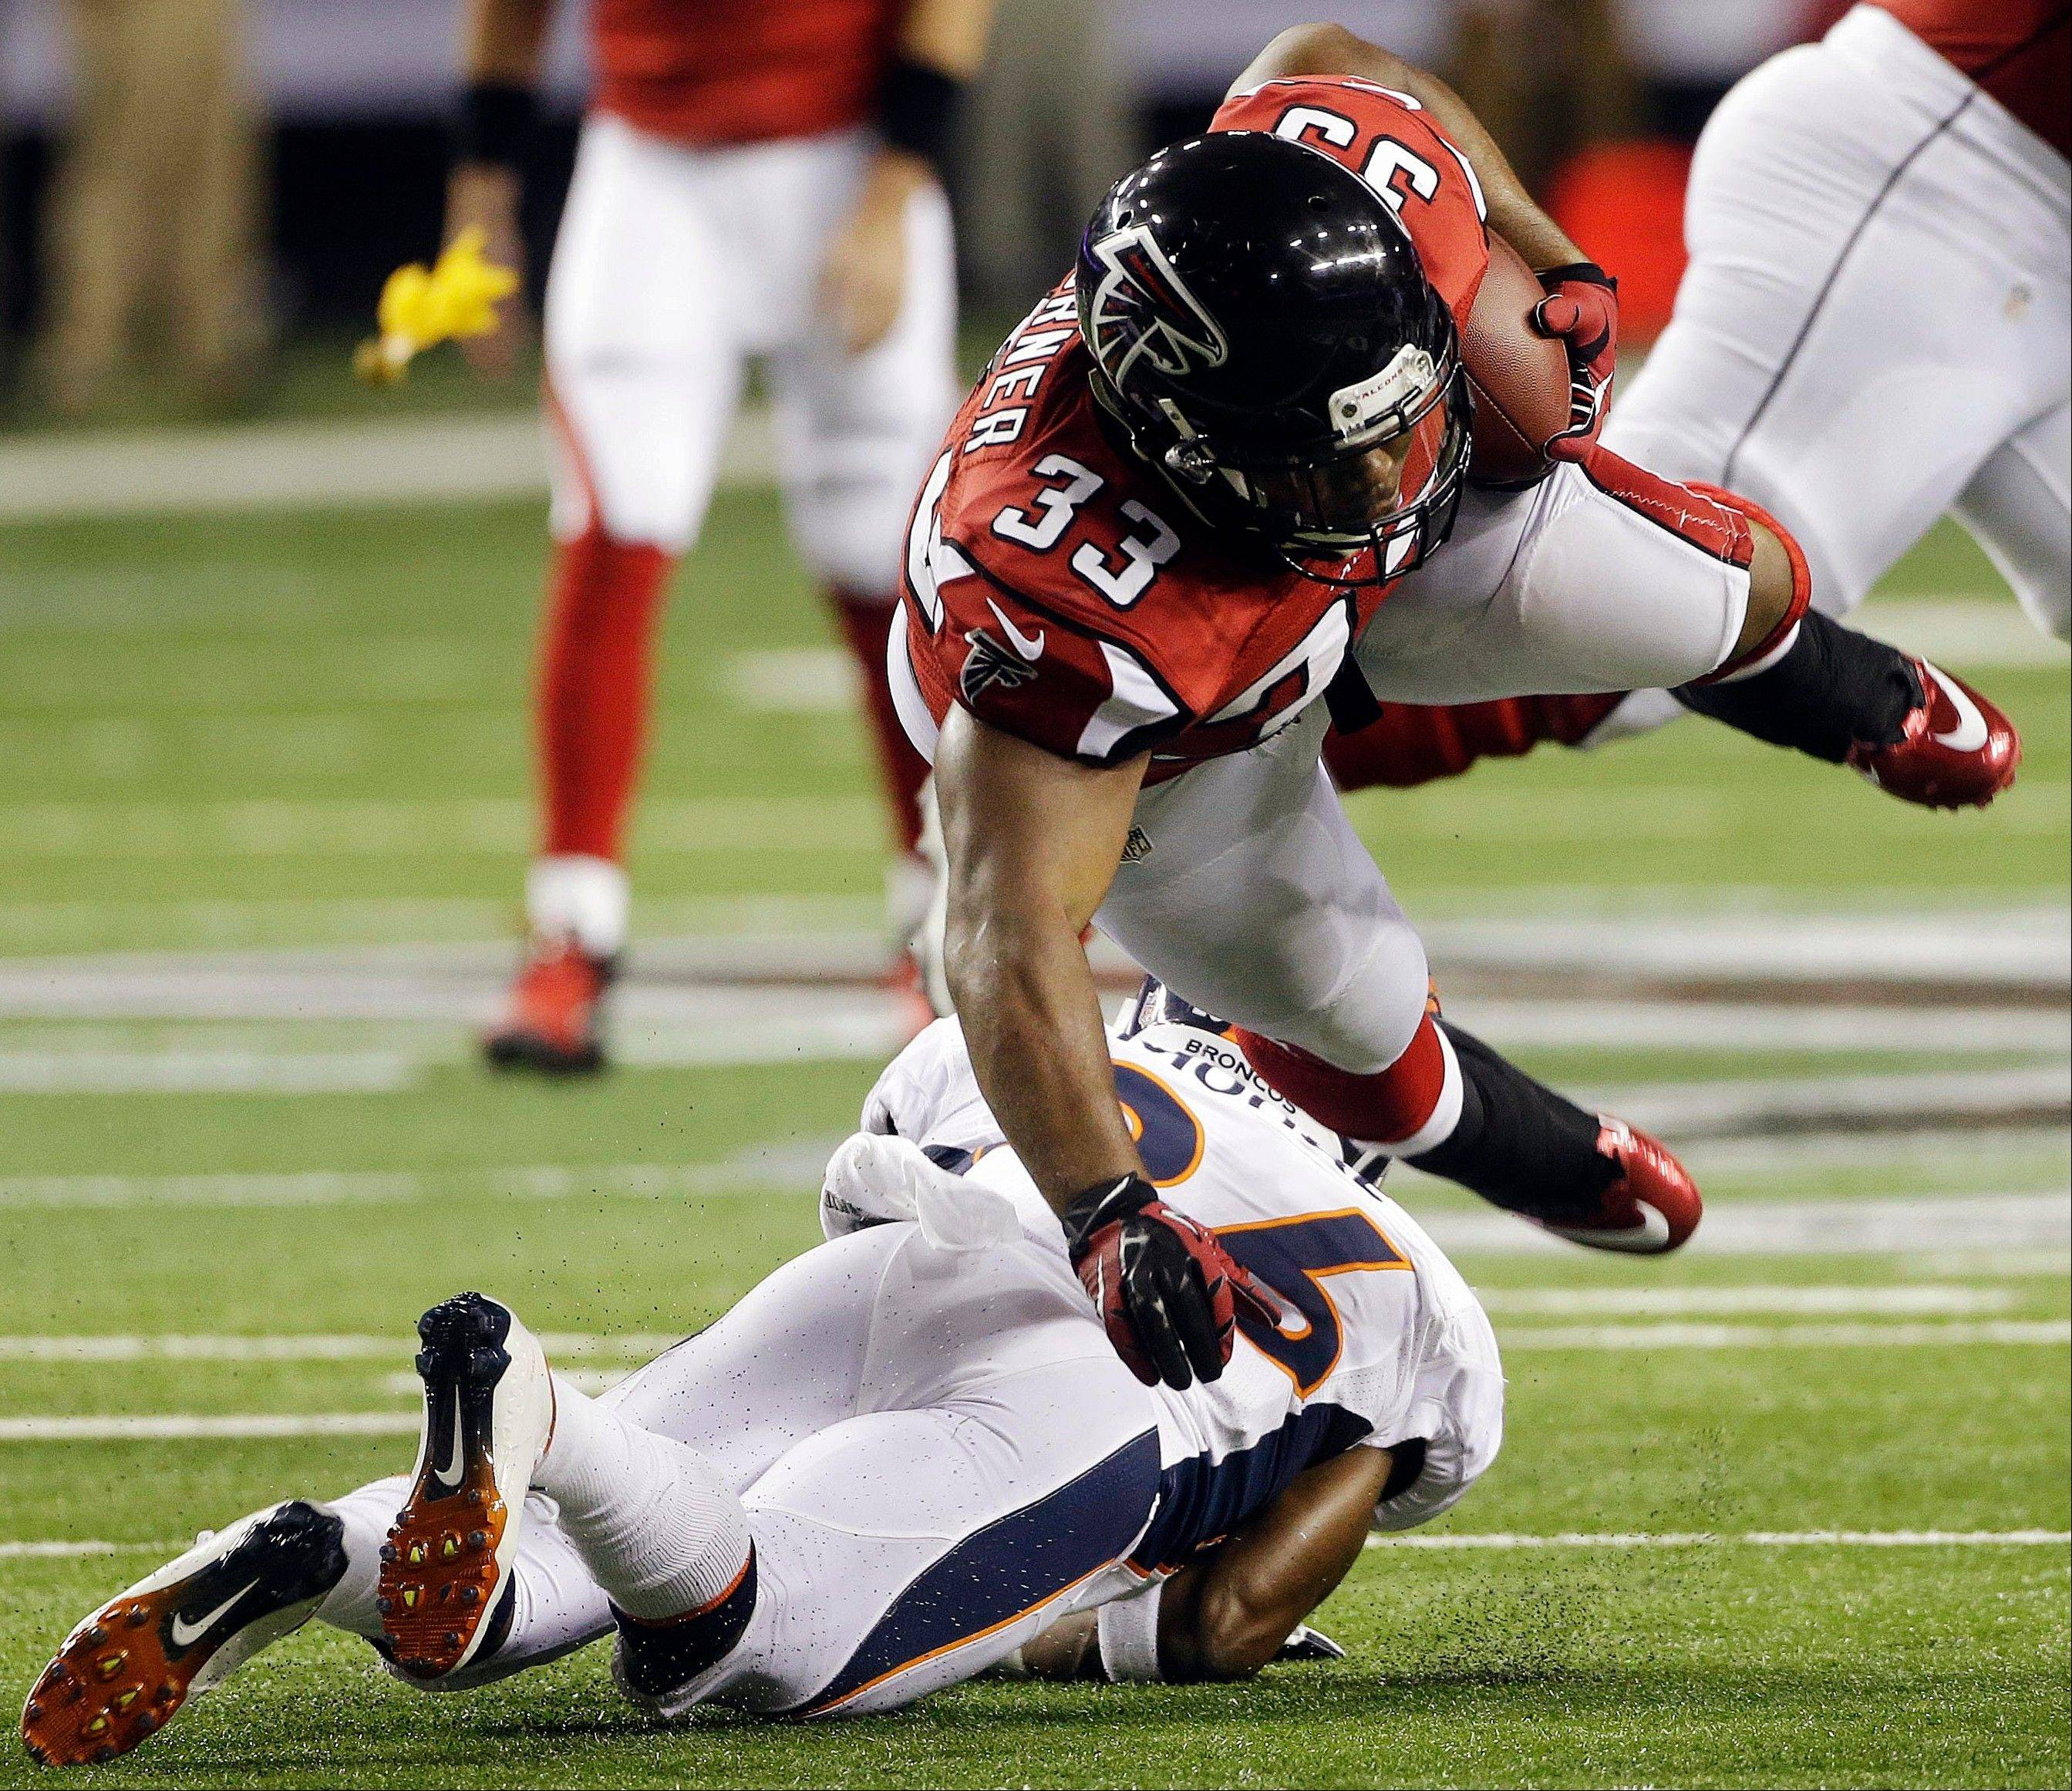 Atlanta Falcons running back Michael Turner (33) is hit by Denver Broncos free safety Rahim Moore (26) in Monday's NFL game. Turner was arrested early Tuesday morning on charges of drunken driving and speeding.